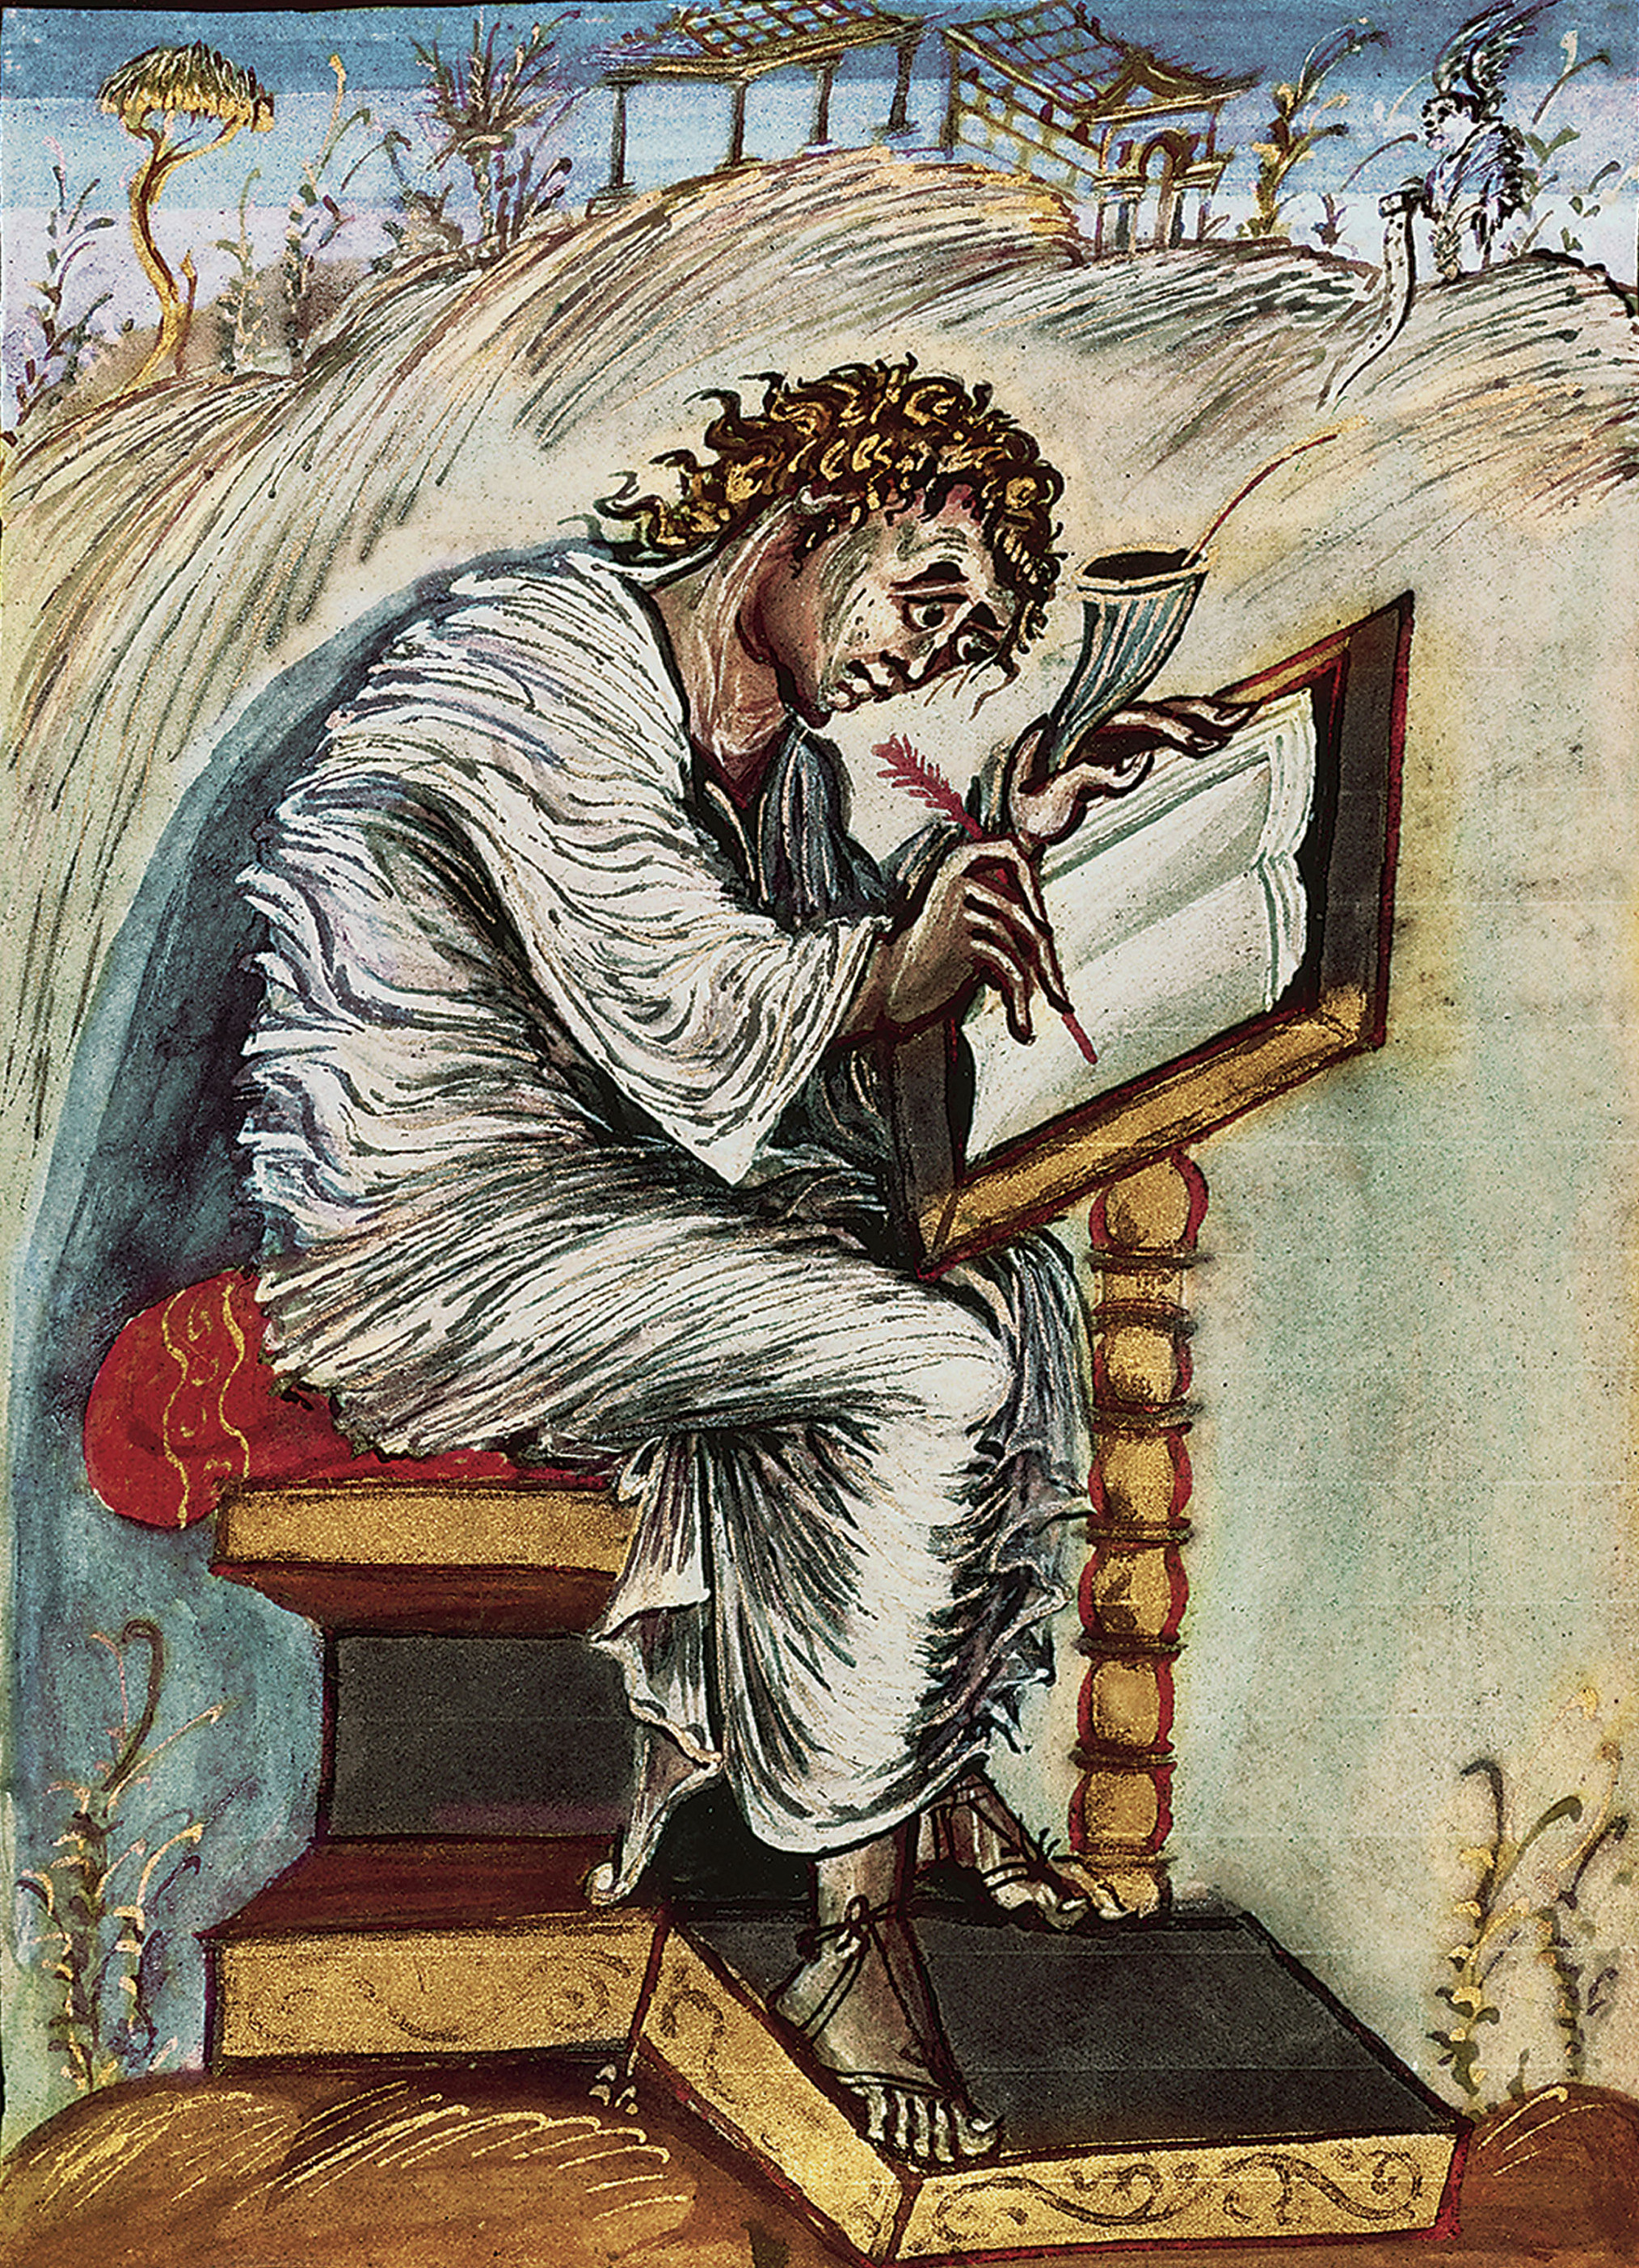 Saint Matthew, from the 9th-century Ebbo Gospels.